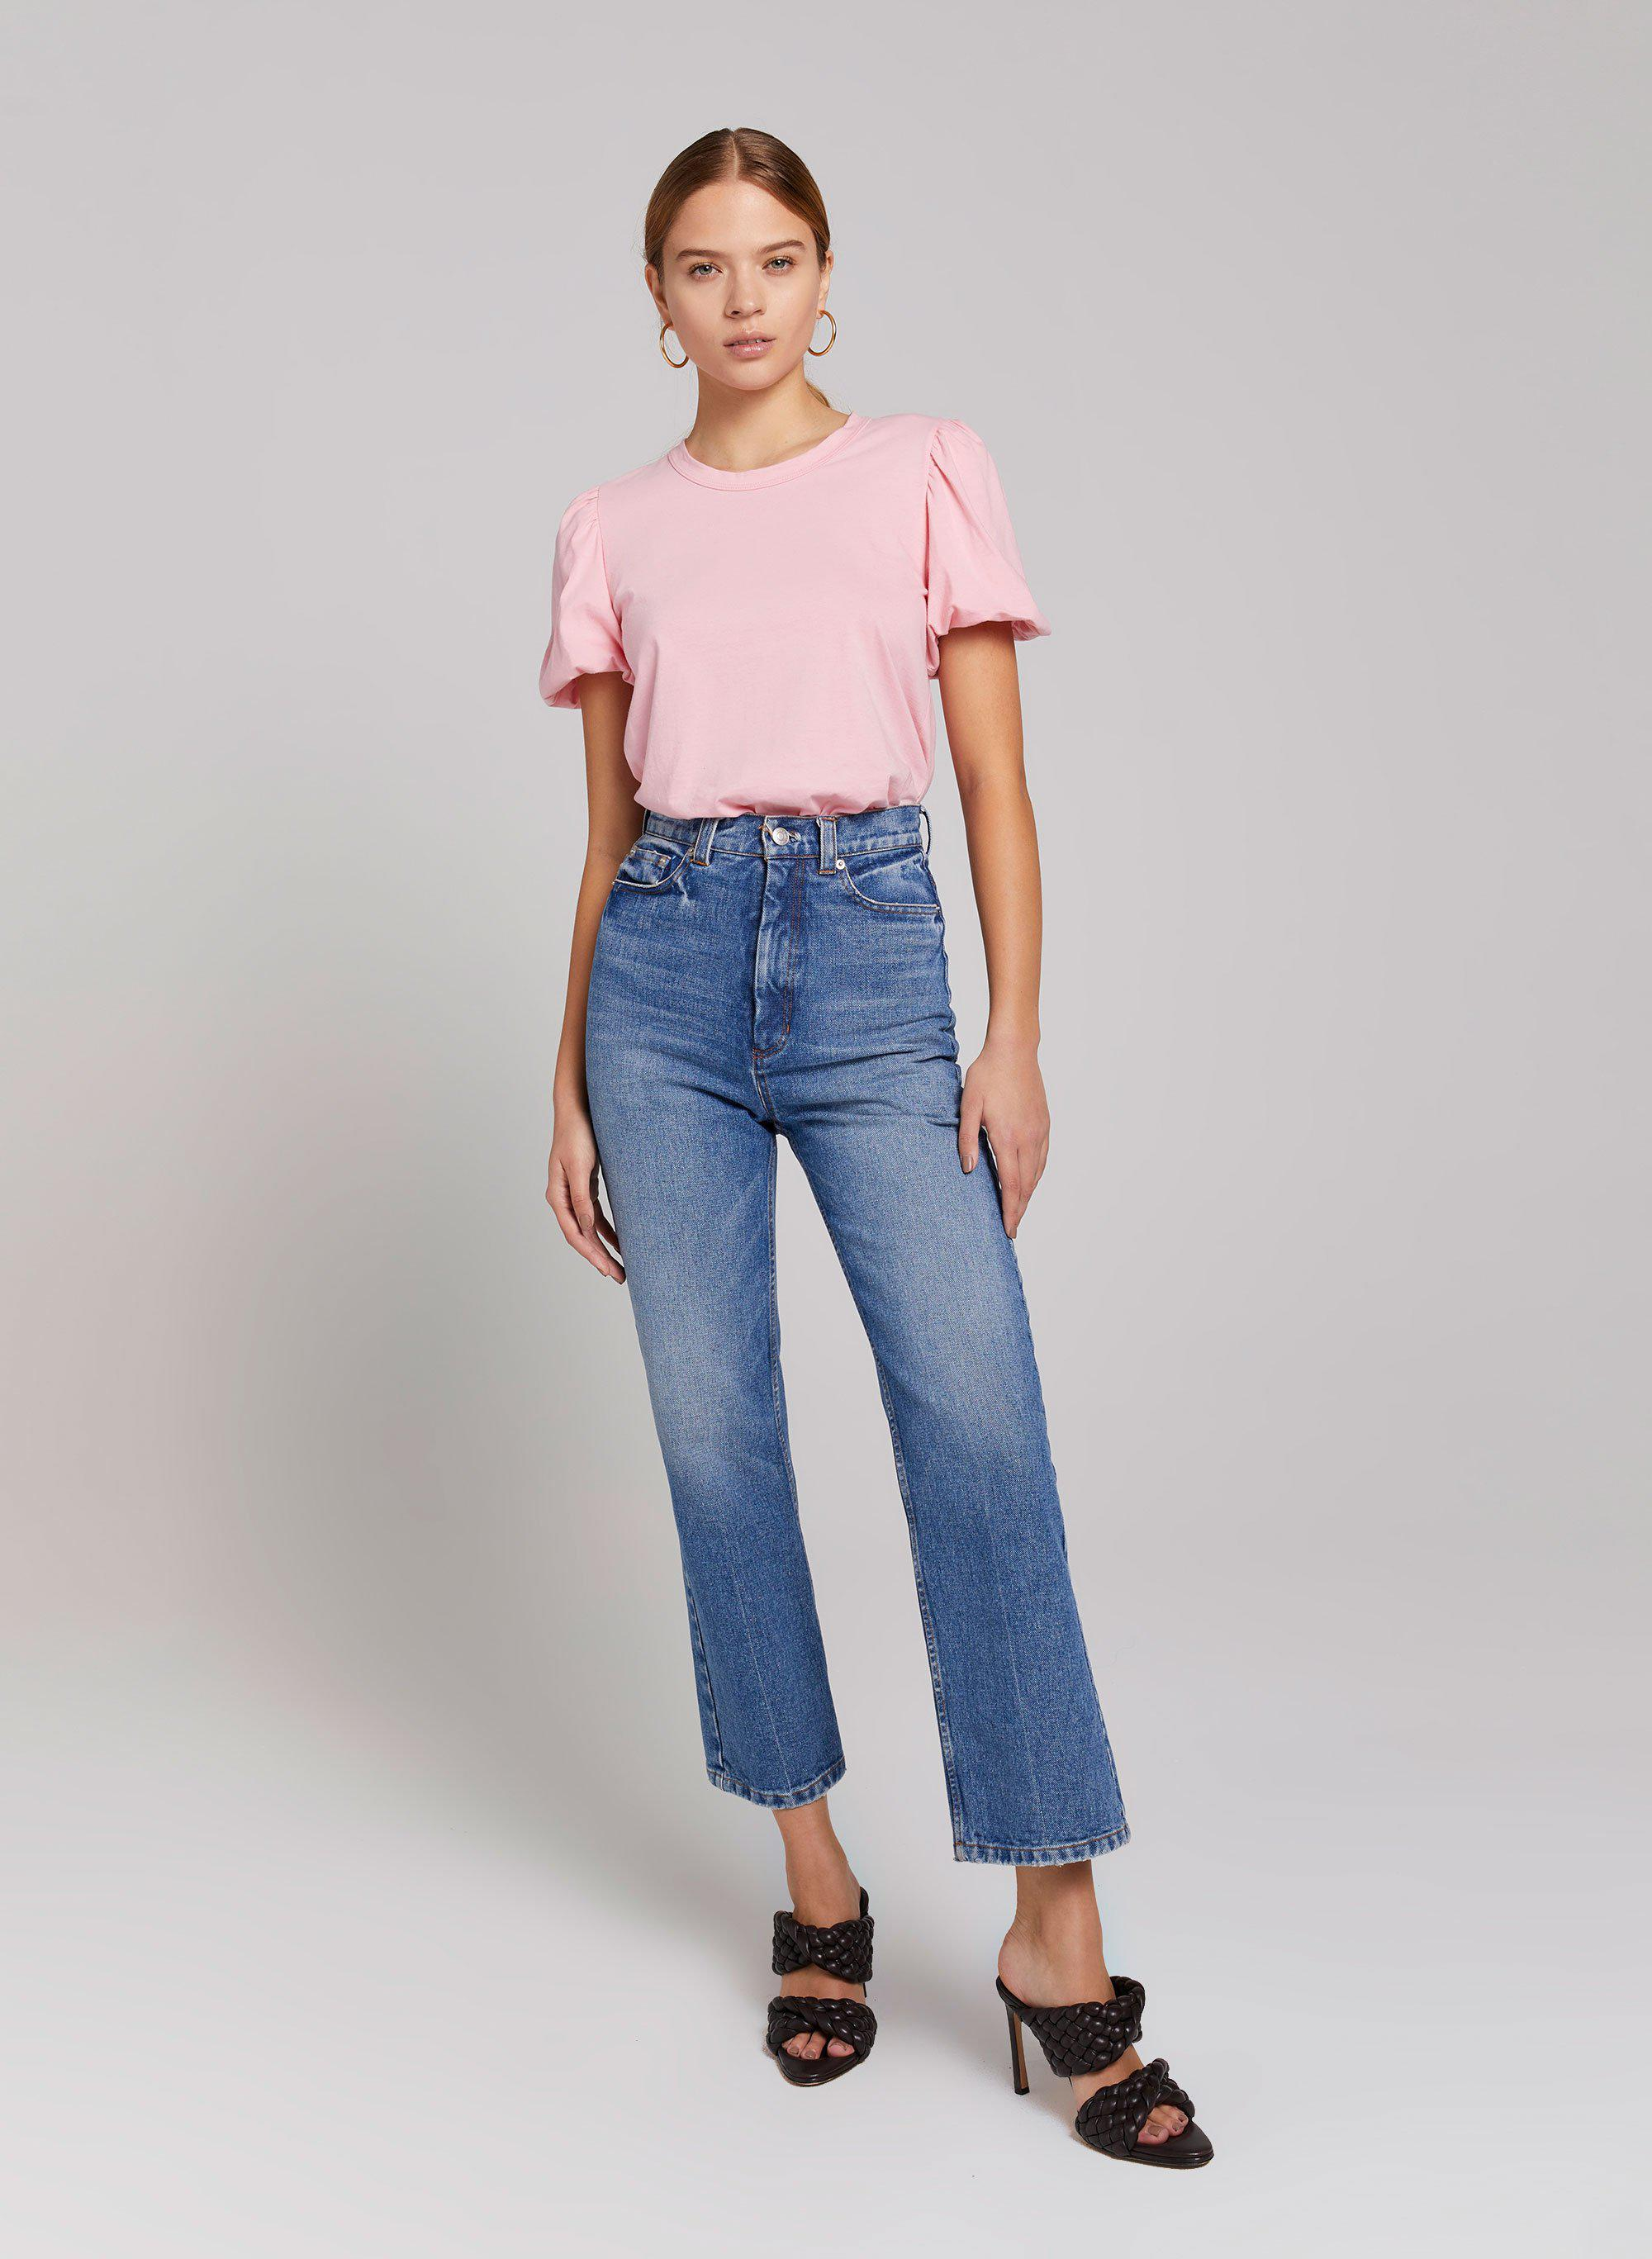 Poole Cotton Jersey Tee 1